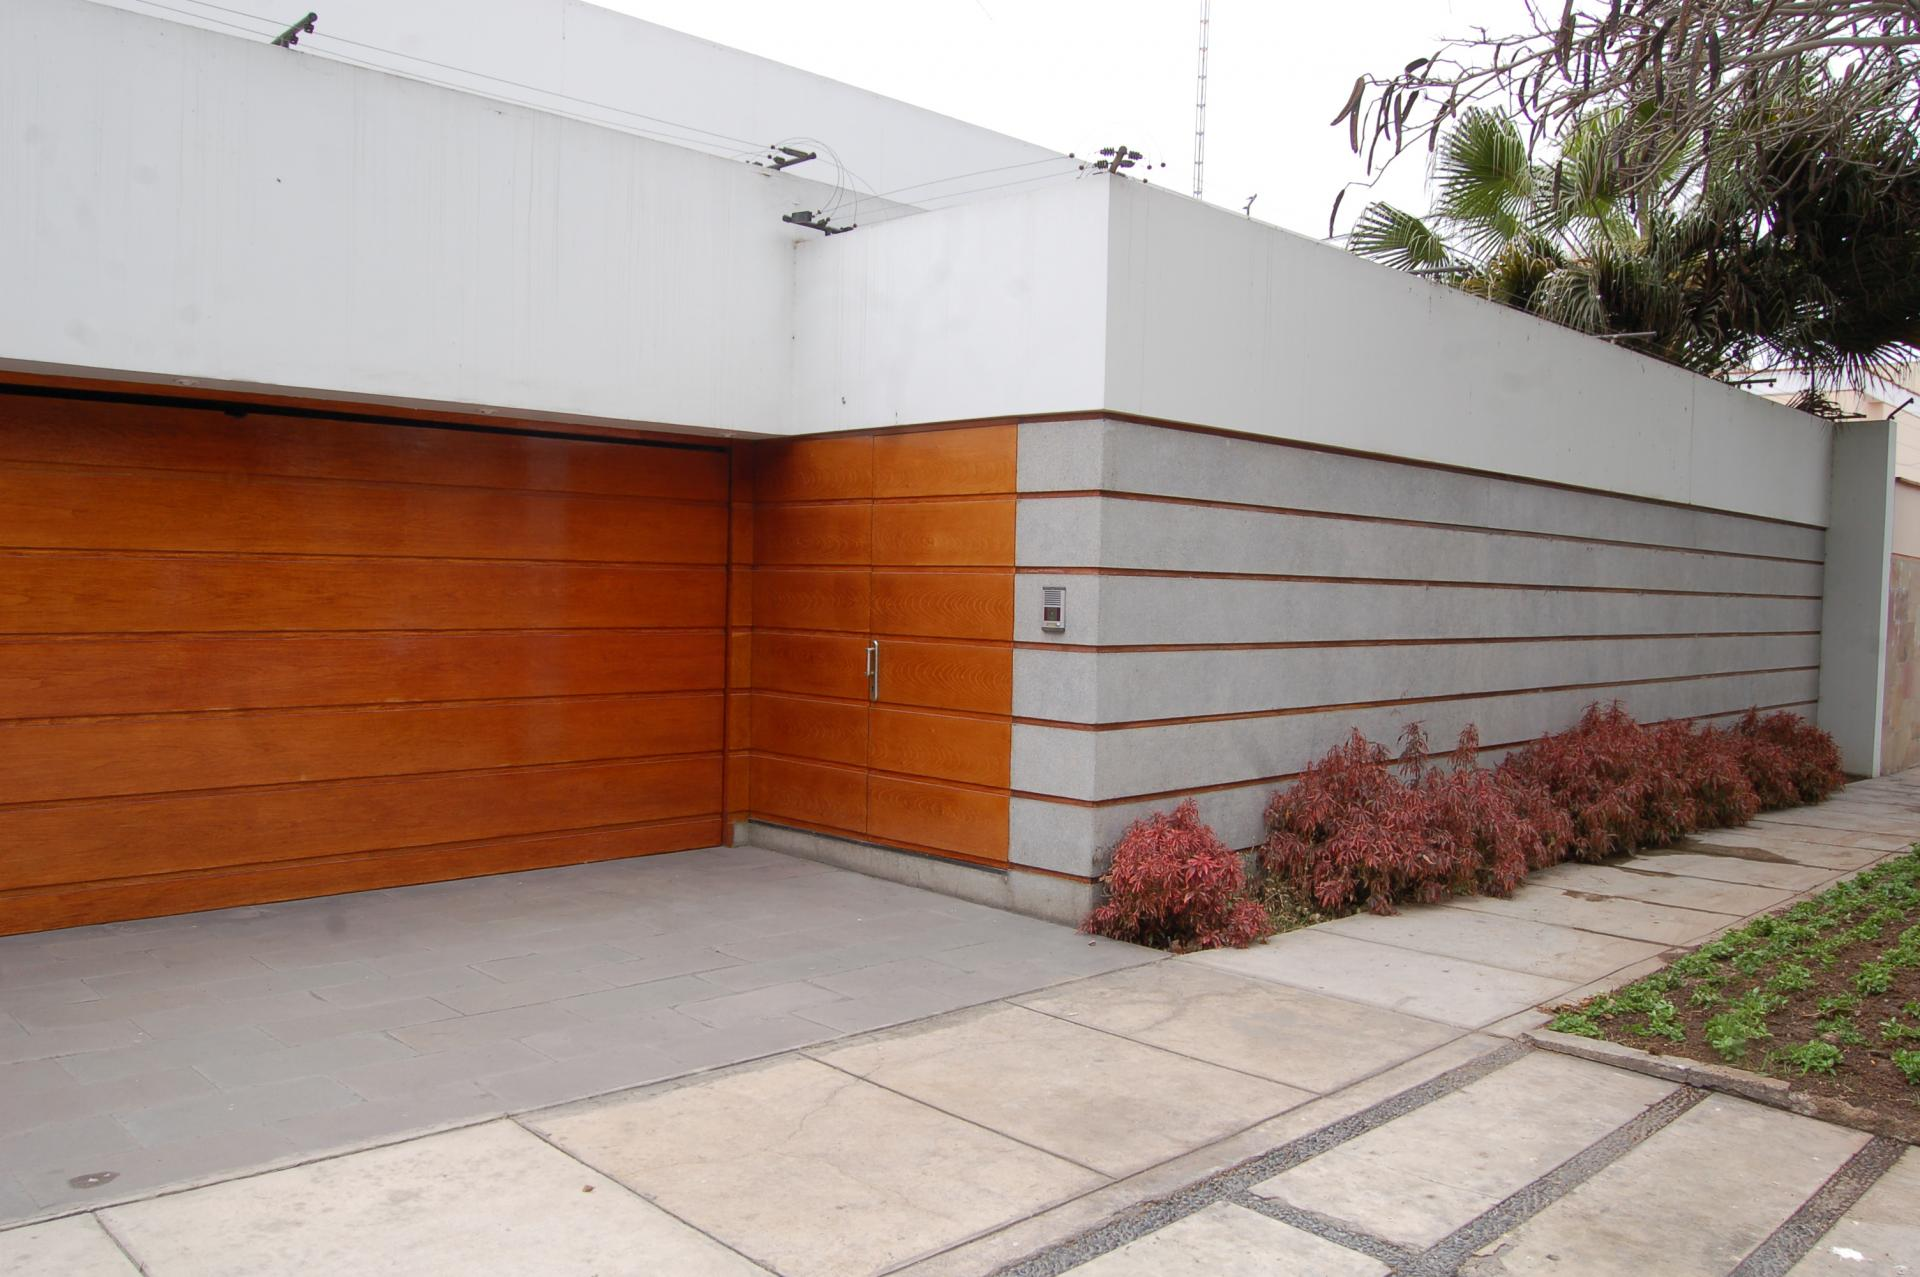 LIMA, SAN ISIDRO, PARQUE ACOSTA, 4 BEDROOM HOUSE, FOR SALE